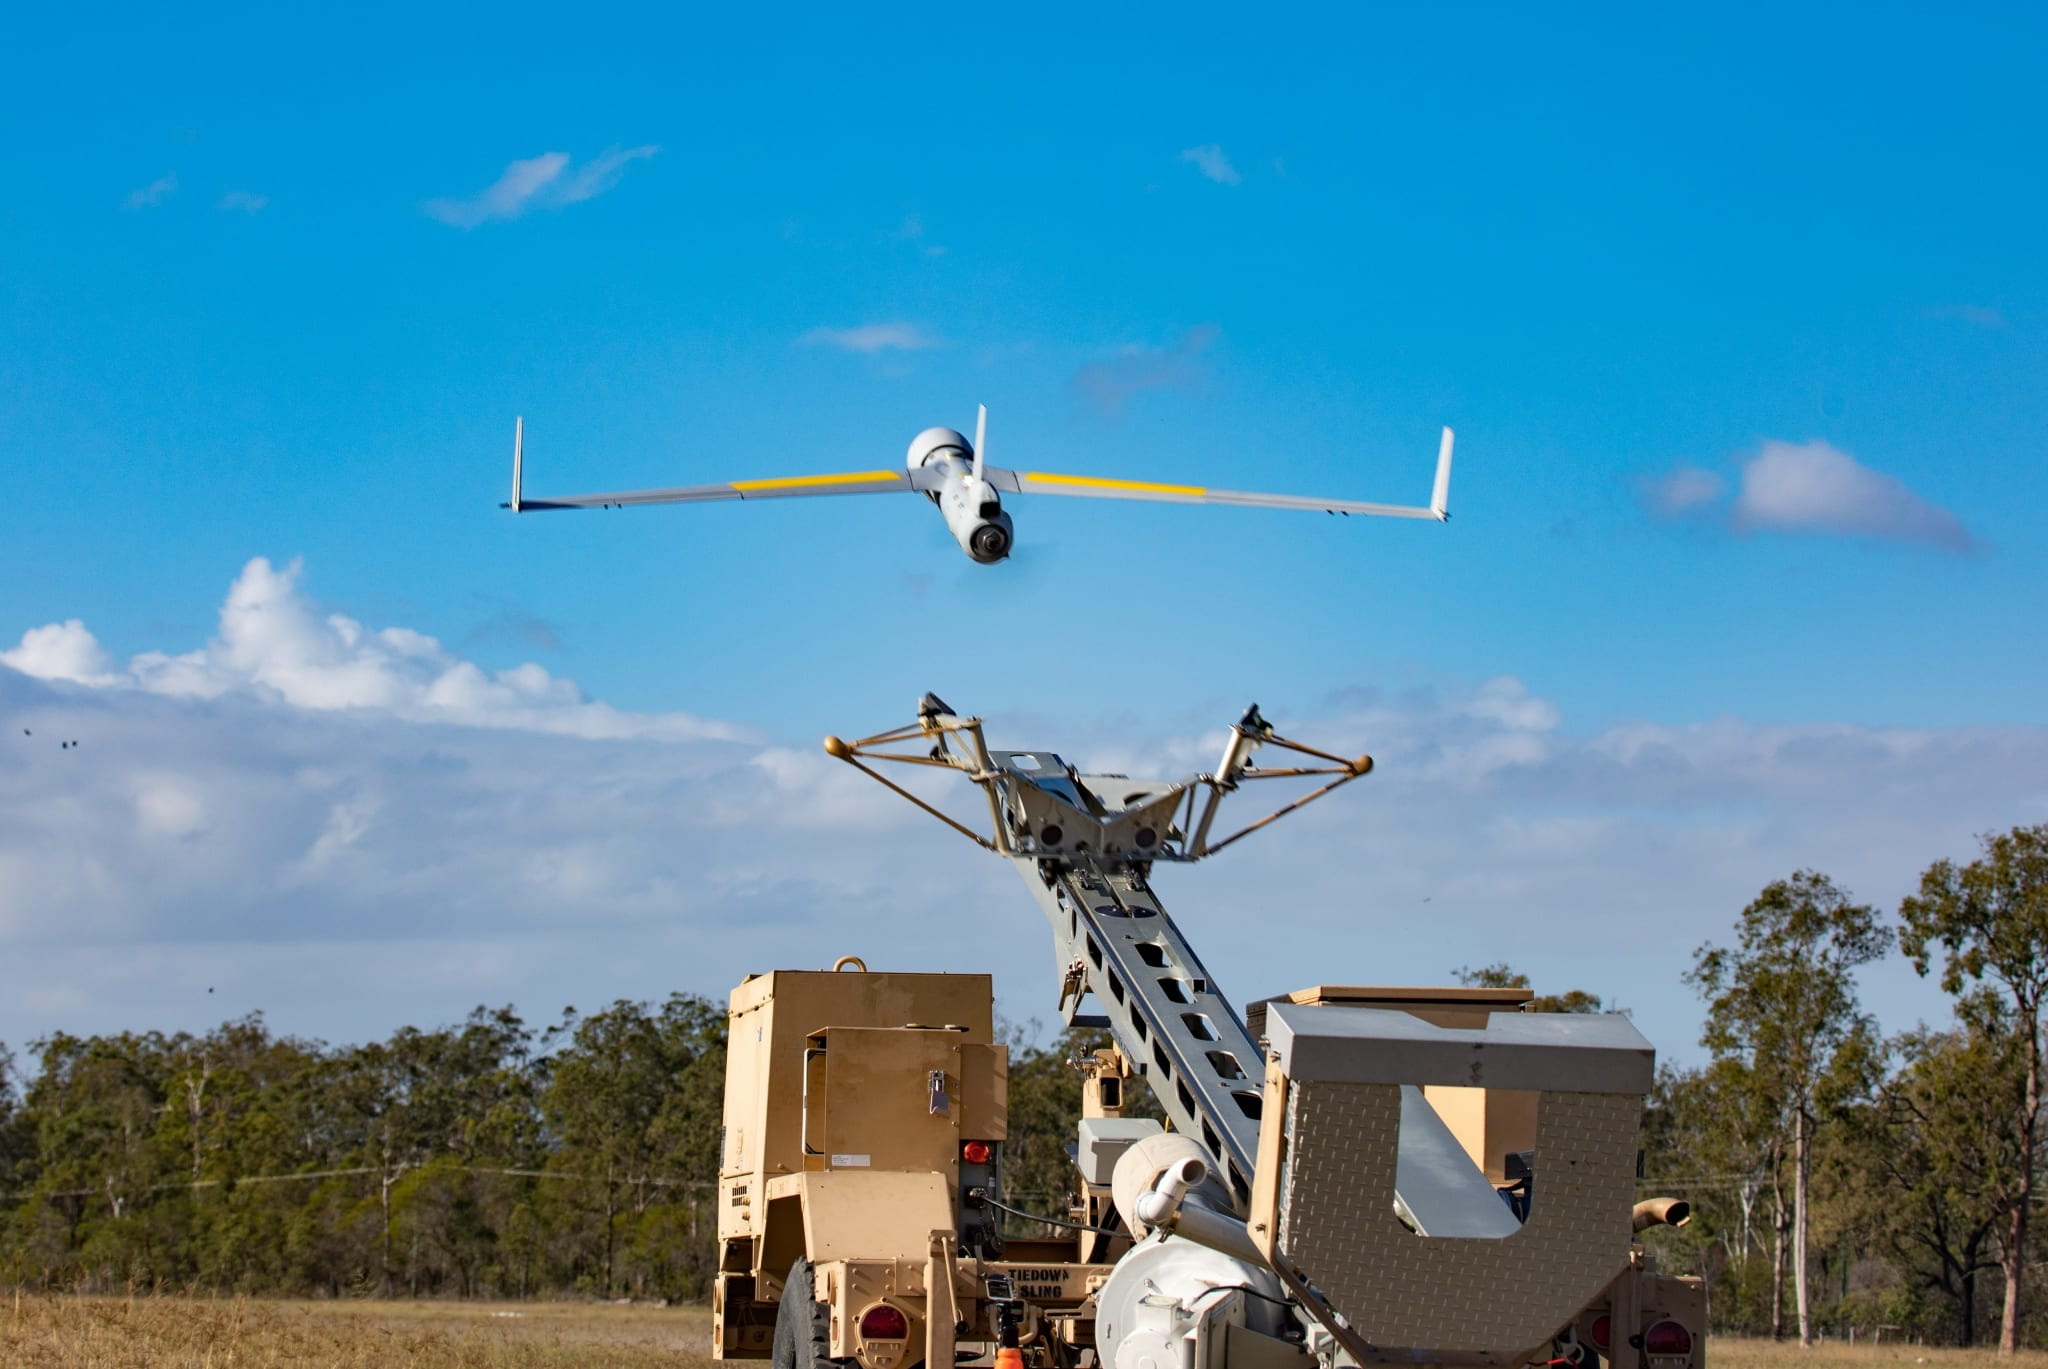 ScanEagle flight testing with Orbital UAV engine